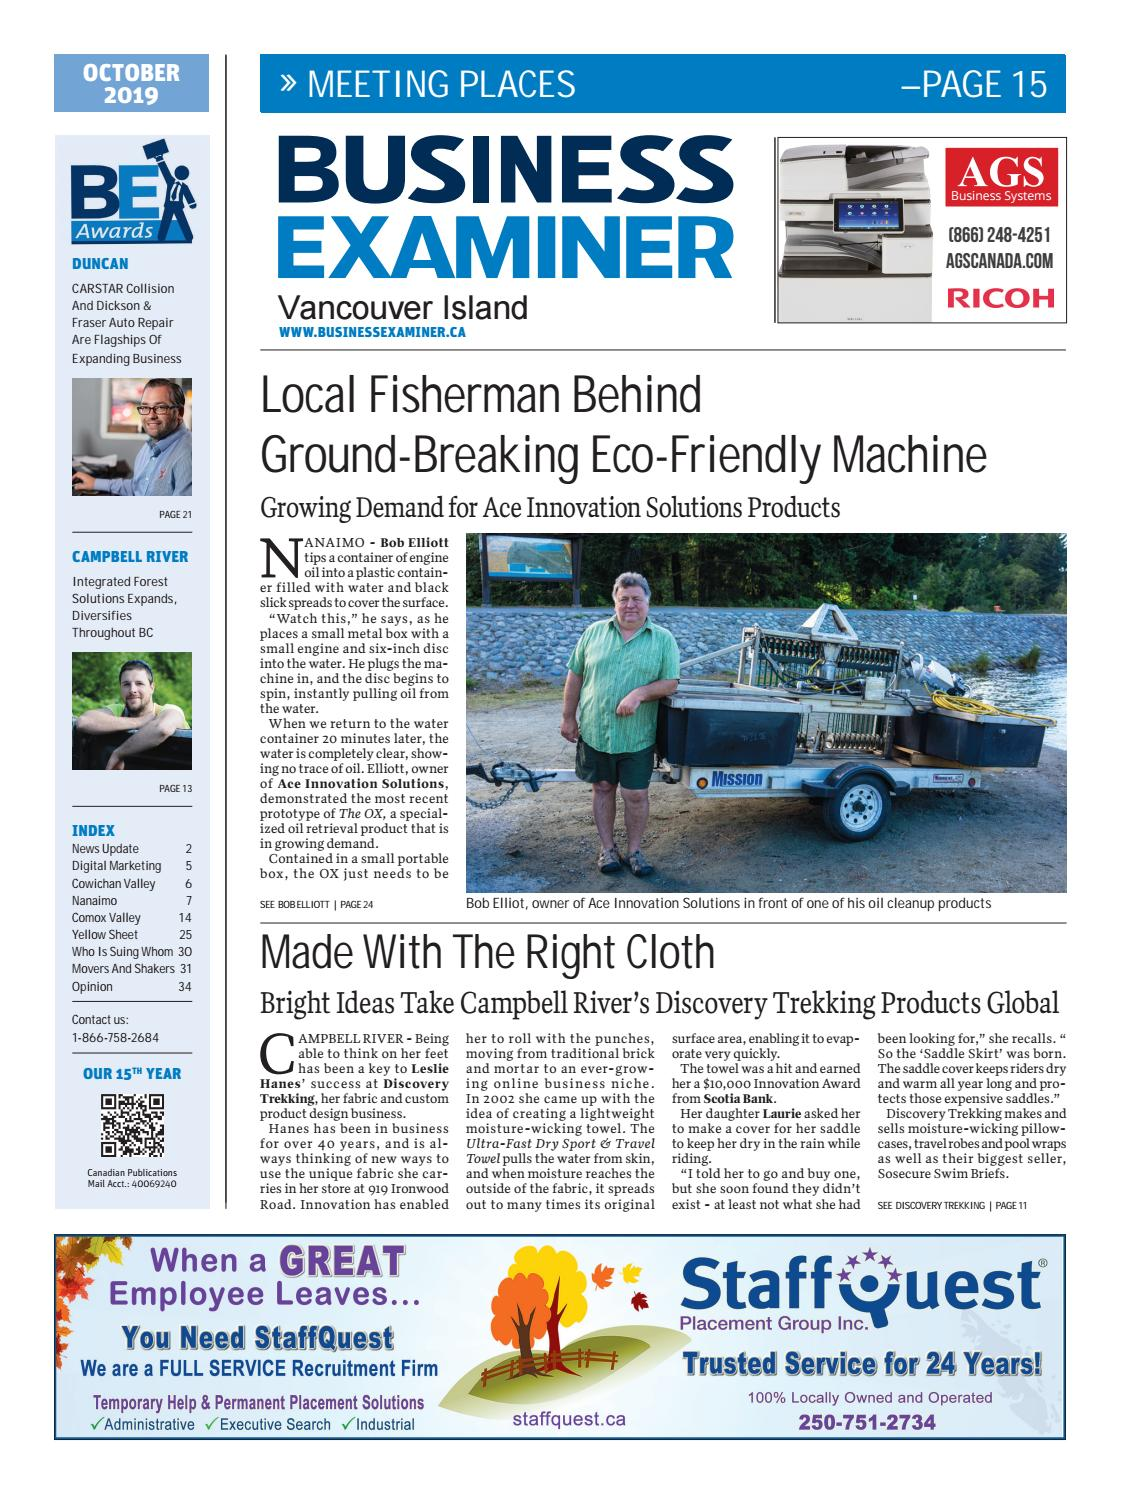 Business Examiner Vancouver Island October 2019 By Business Examiner News Group Issuu